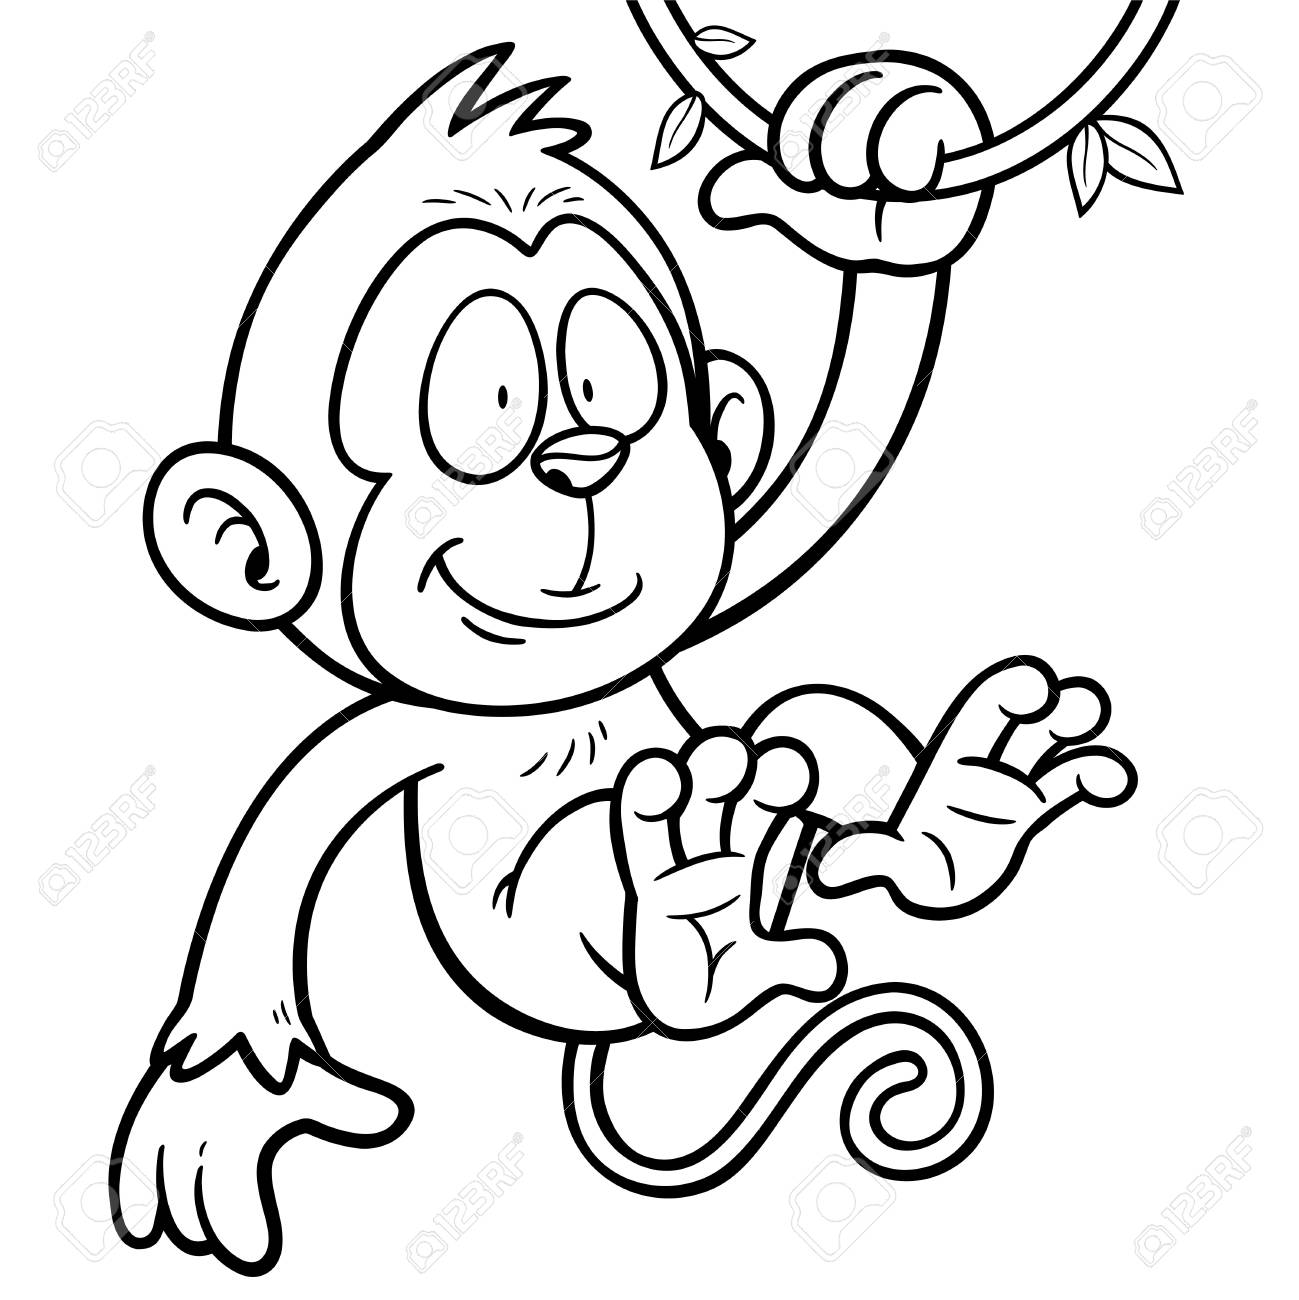 Vector Illustration Of Cartoon Monkey - Coloring Book Royalty Free ...